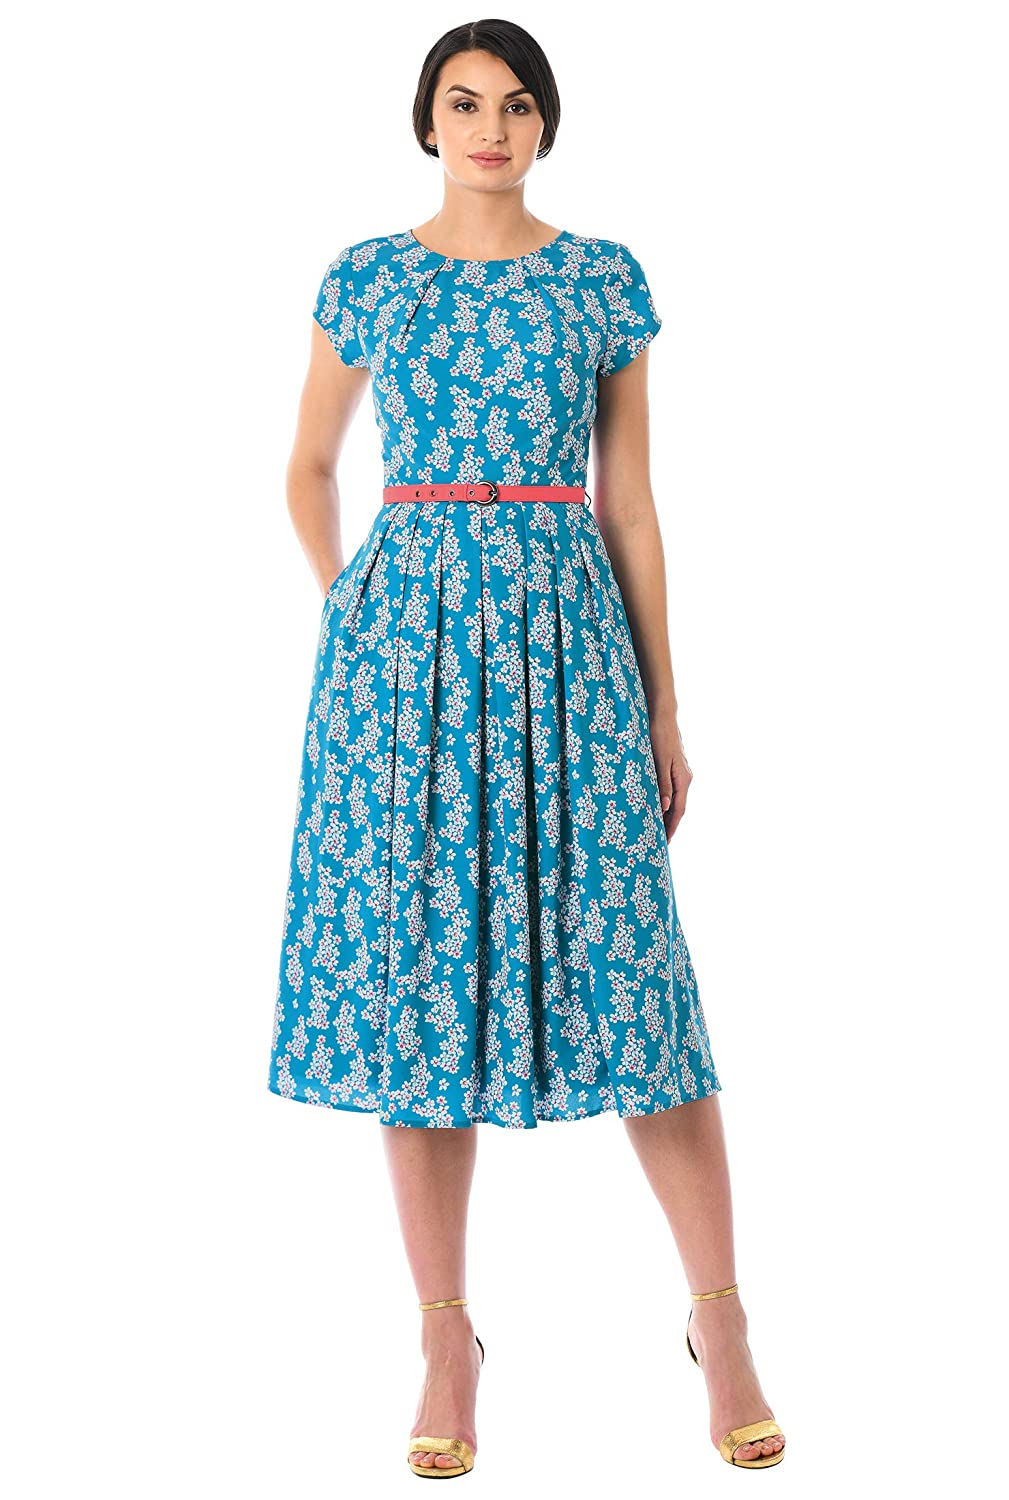 1940s Plus Size Fashion: Style Advice from 1940s to Today eShakti FX Pleat Neck Belted Floral Print Crepe Dress $64.95 AT vintagedancer.com